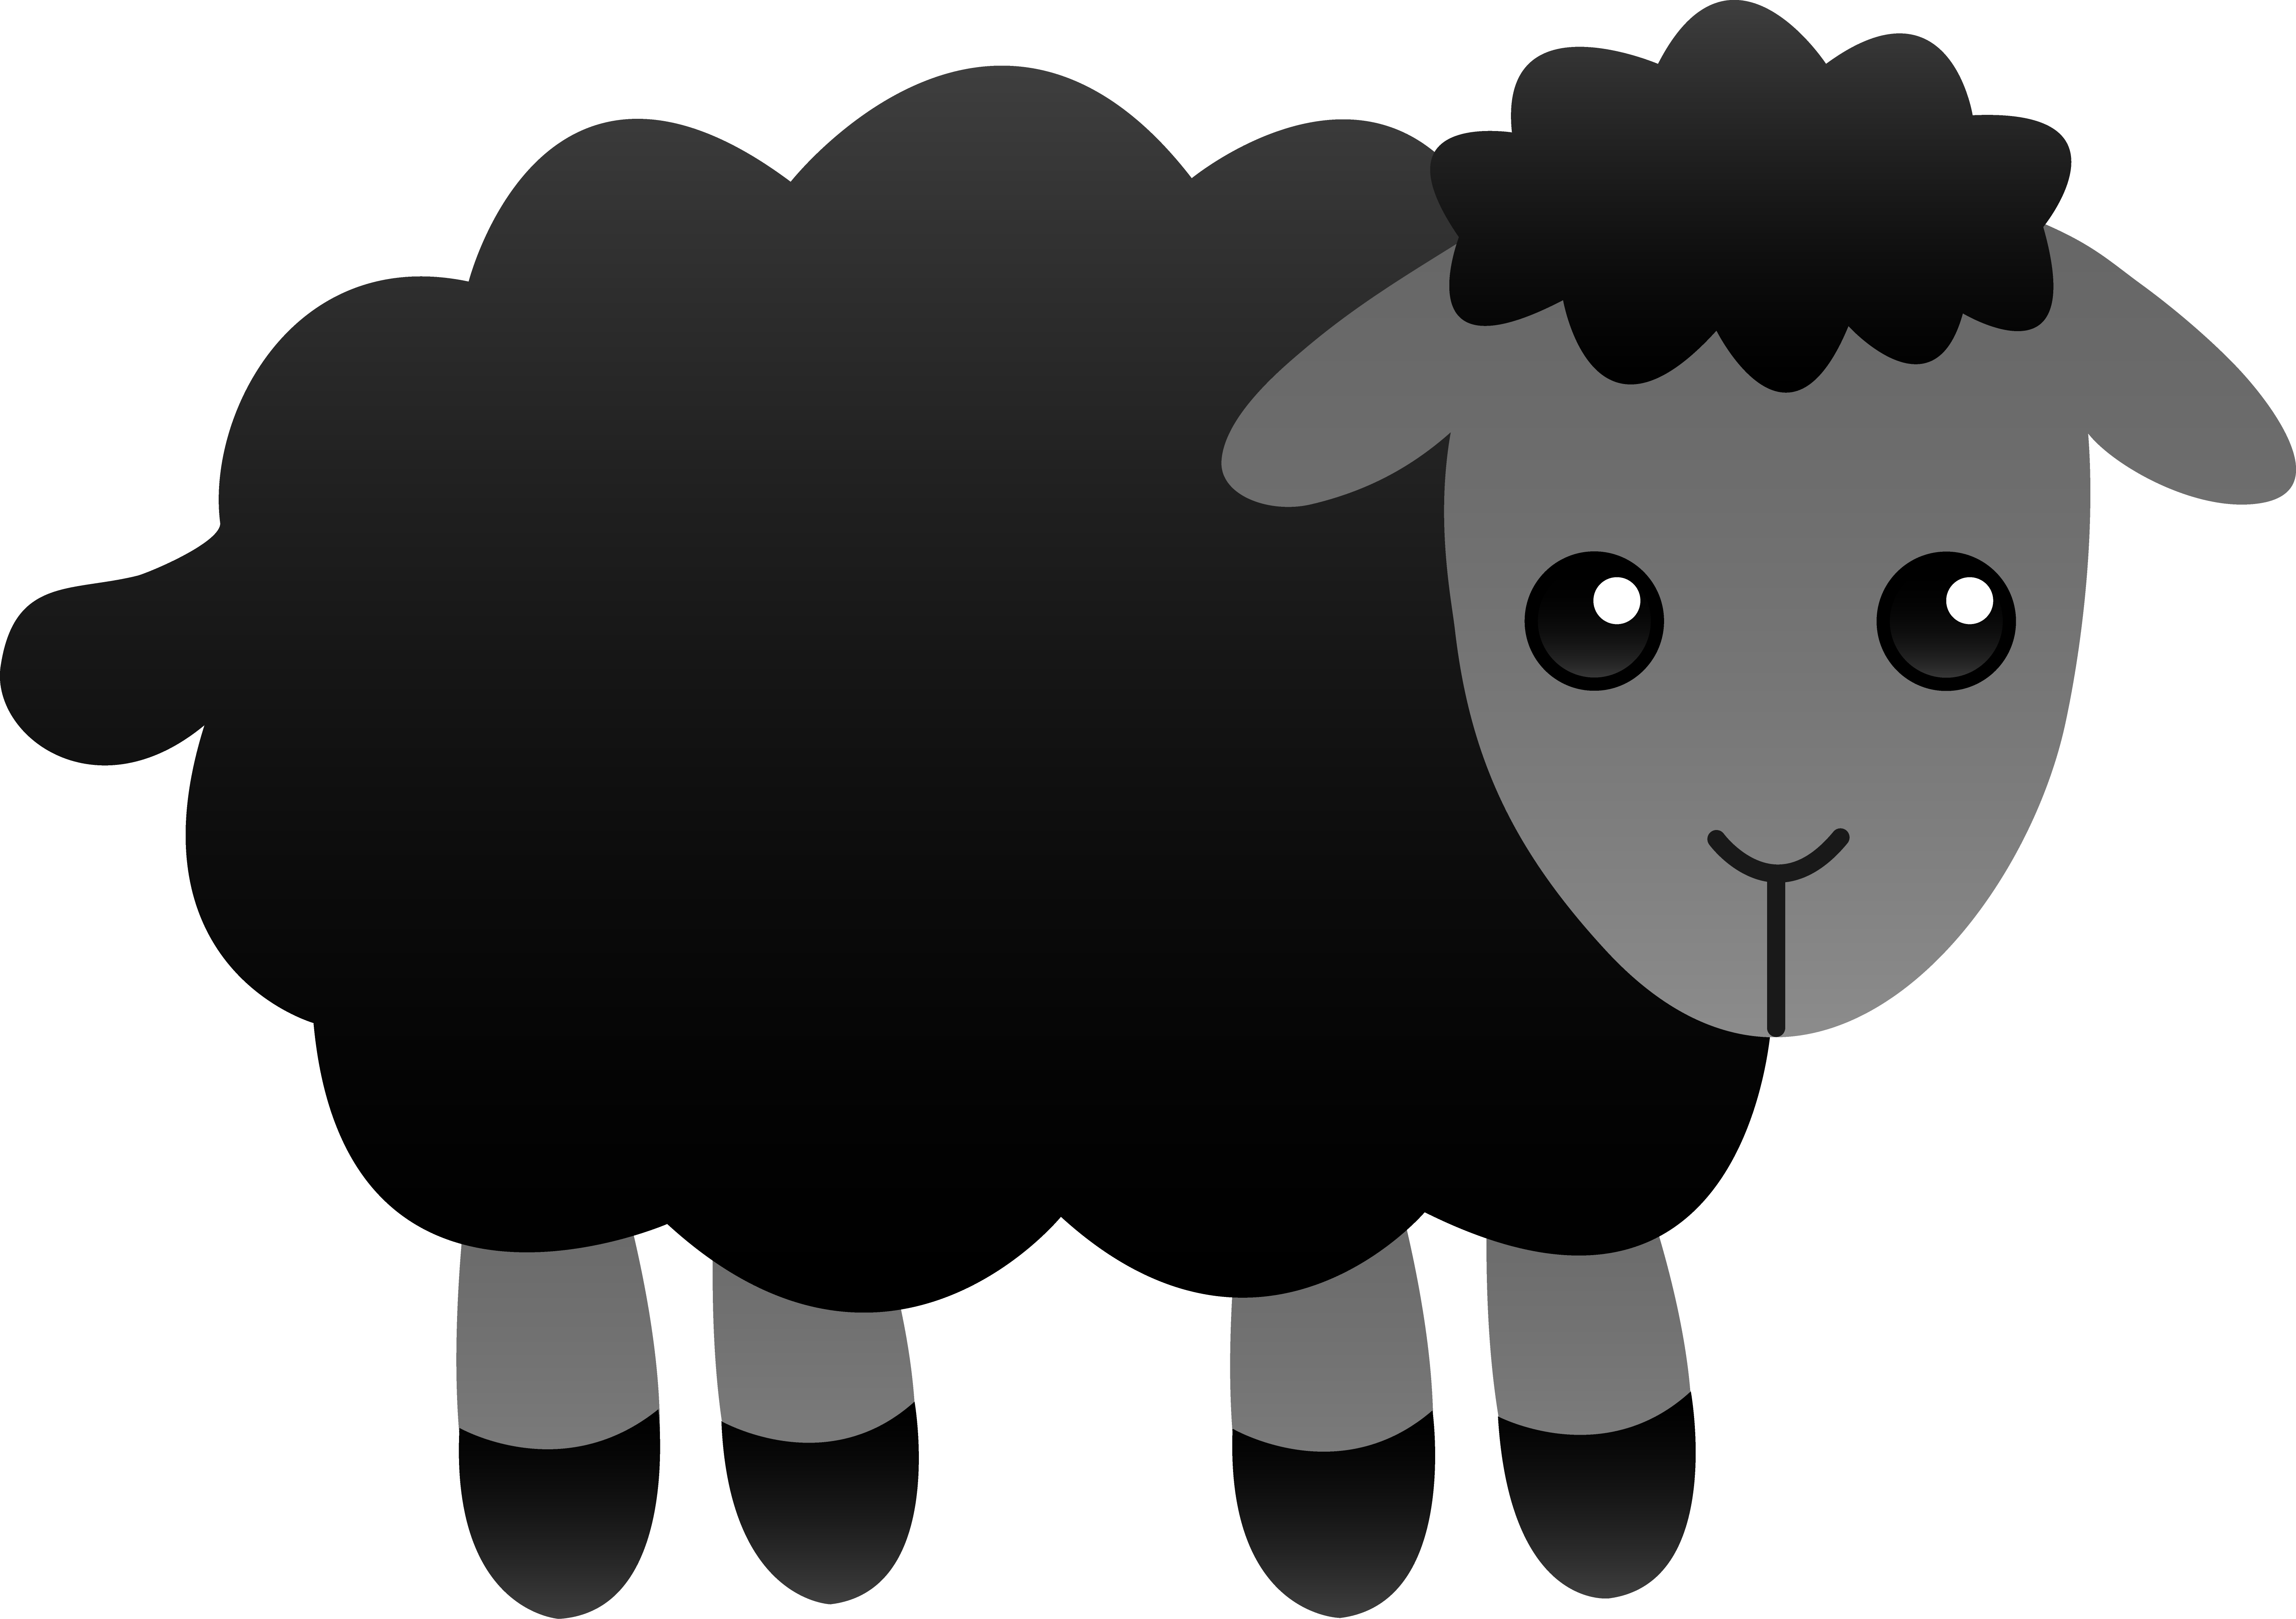 Sheep Clipart Cute - .-Sheep clipart cute - .-15